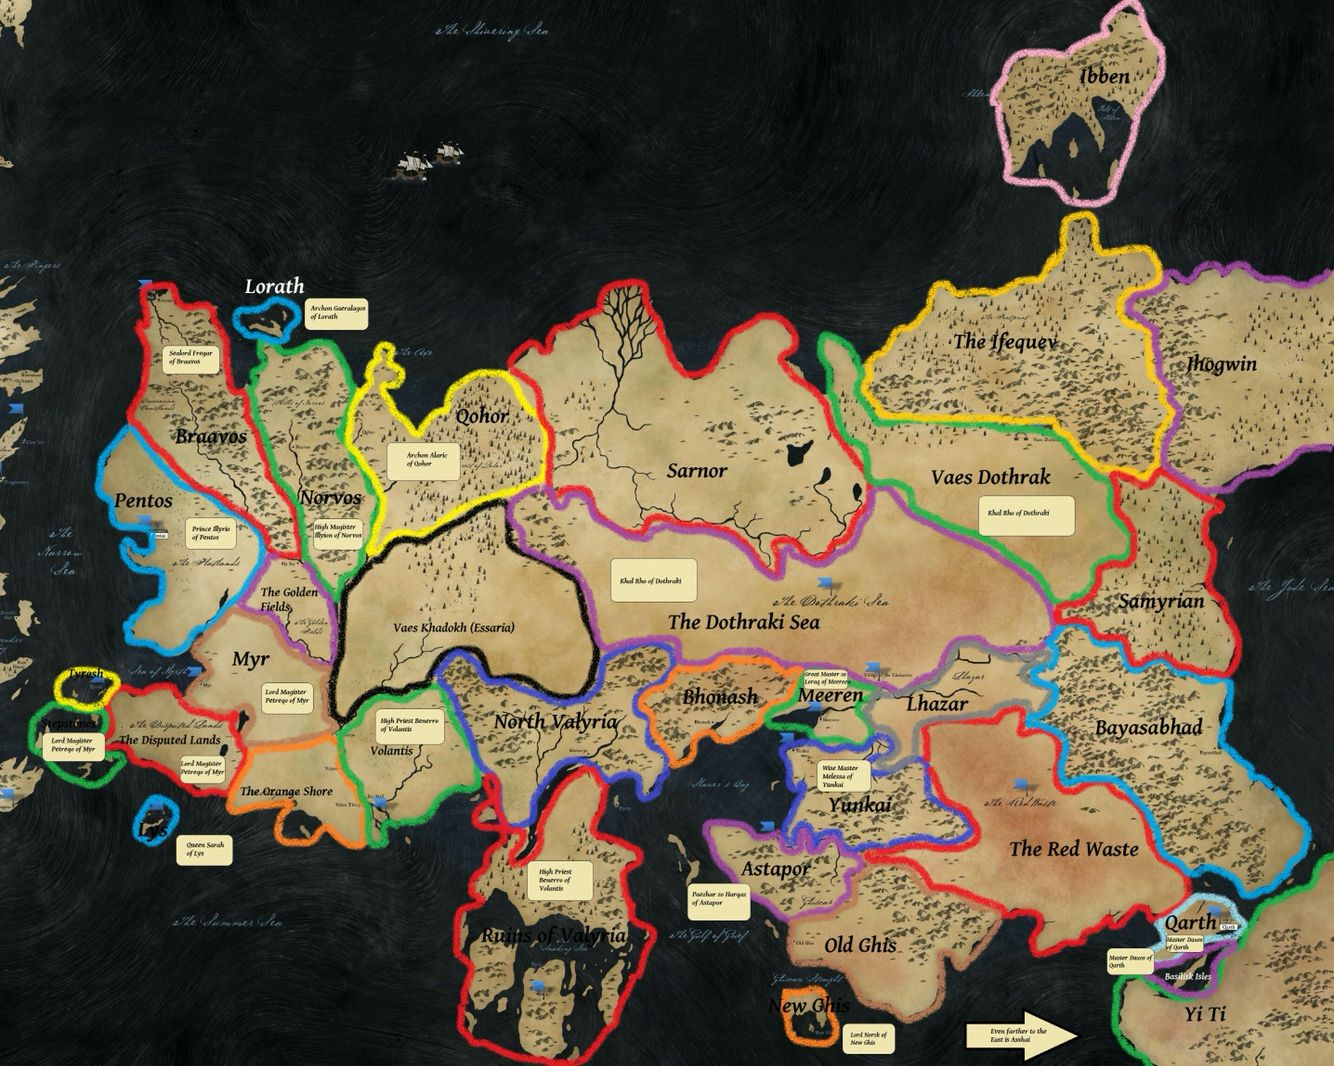 Essos Map | ASOIAF in 2019 | Game of thrones map, Game of ... on game of thrones yi ti, game of thrones wallpaper 1280x1024, game of thrones poster, official map of essos, game of thrones sothoryos, game of thrones maps pdf, hd map of westeros essos, game of thrones family tree house, game of thrones king's landing minecraft, game of thrones all books, game of thrones 4d puzzle, game of thrones maps and families, game of thrones city braavos, game of thrones banners, game of thrones qarth, game of thrones house tyrell, game of thrones diagram, game of thrones maps hbo,